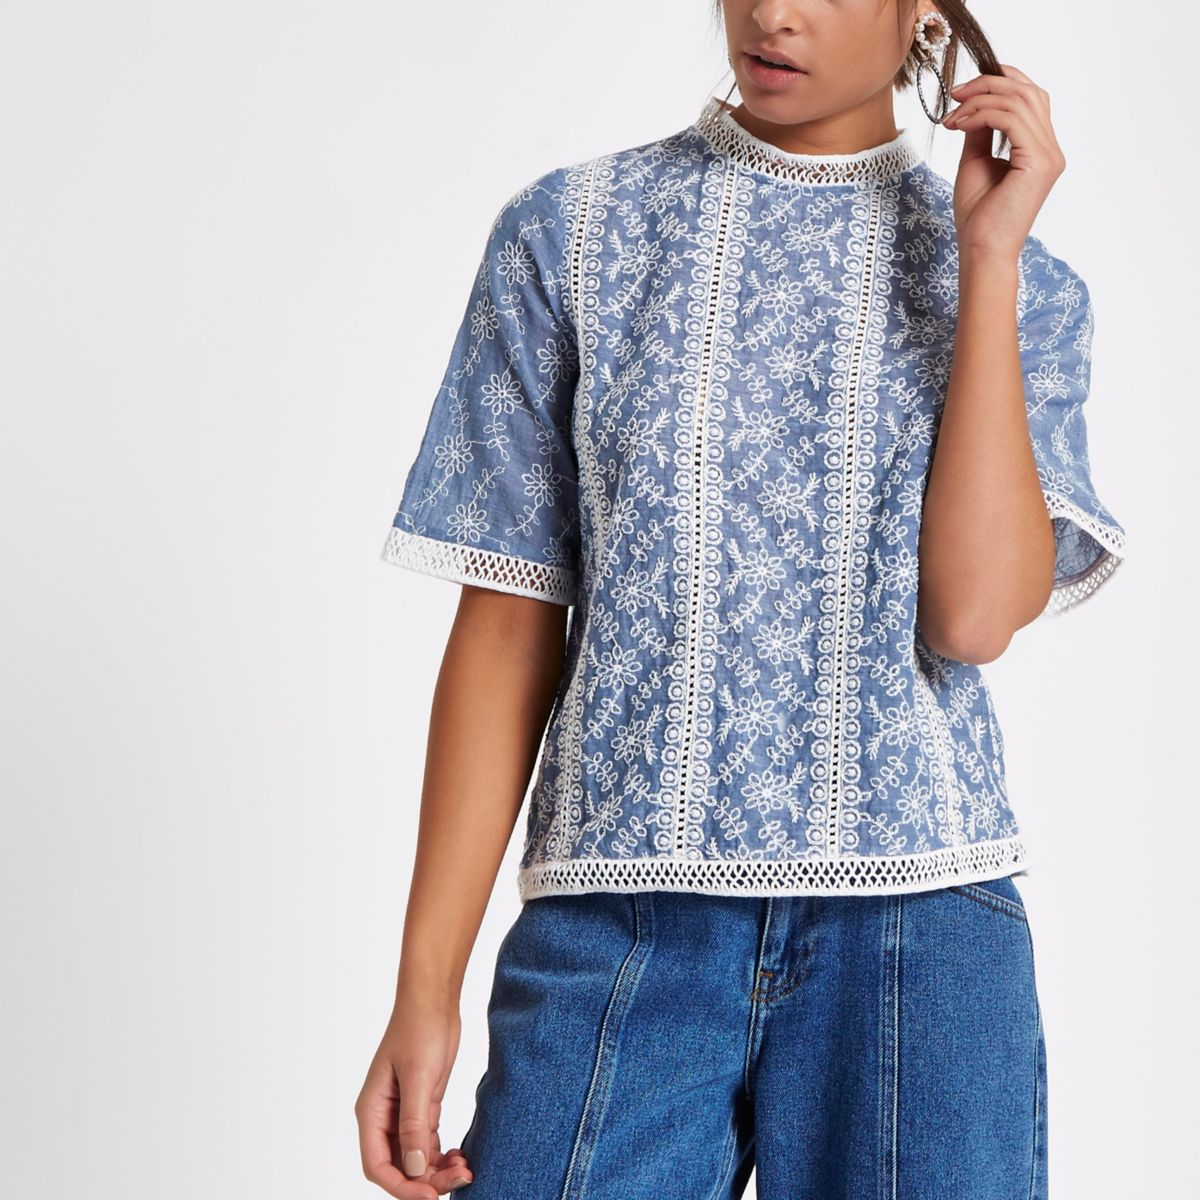 Blue floral embroidered lace trim top